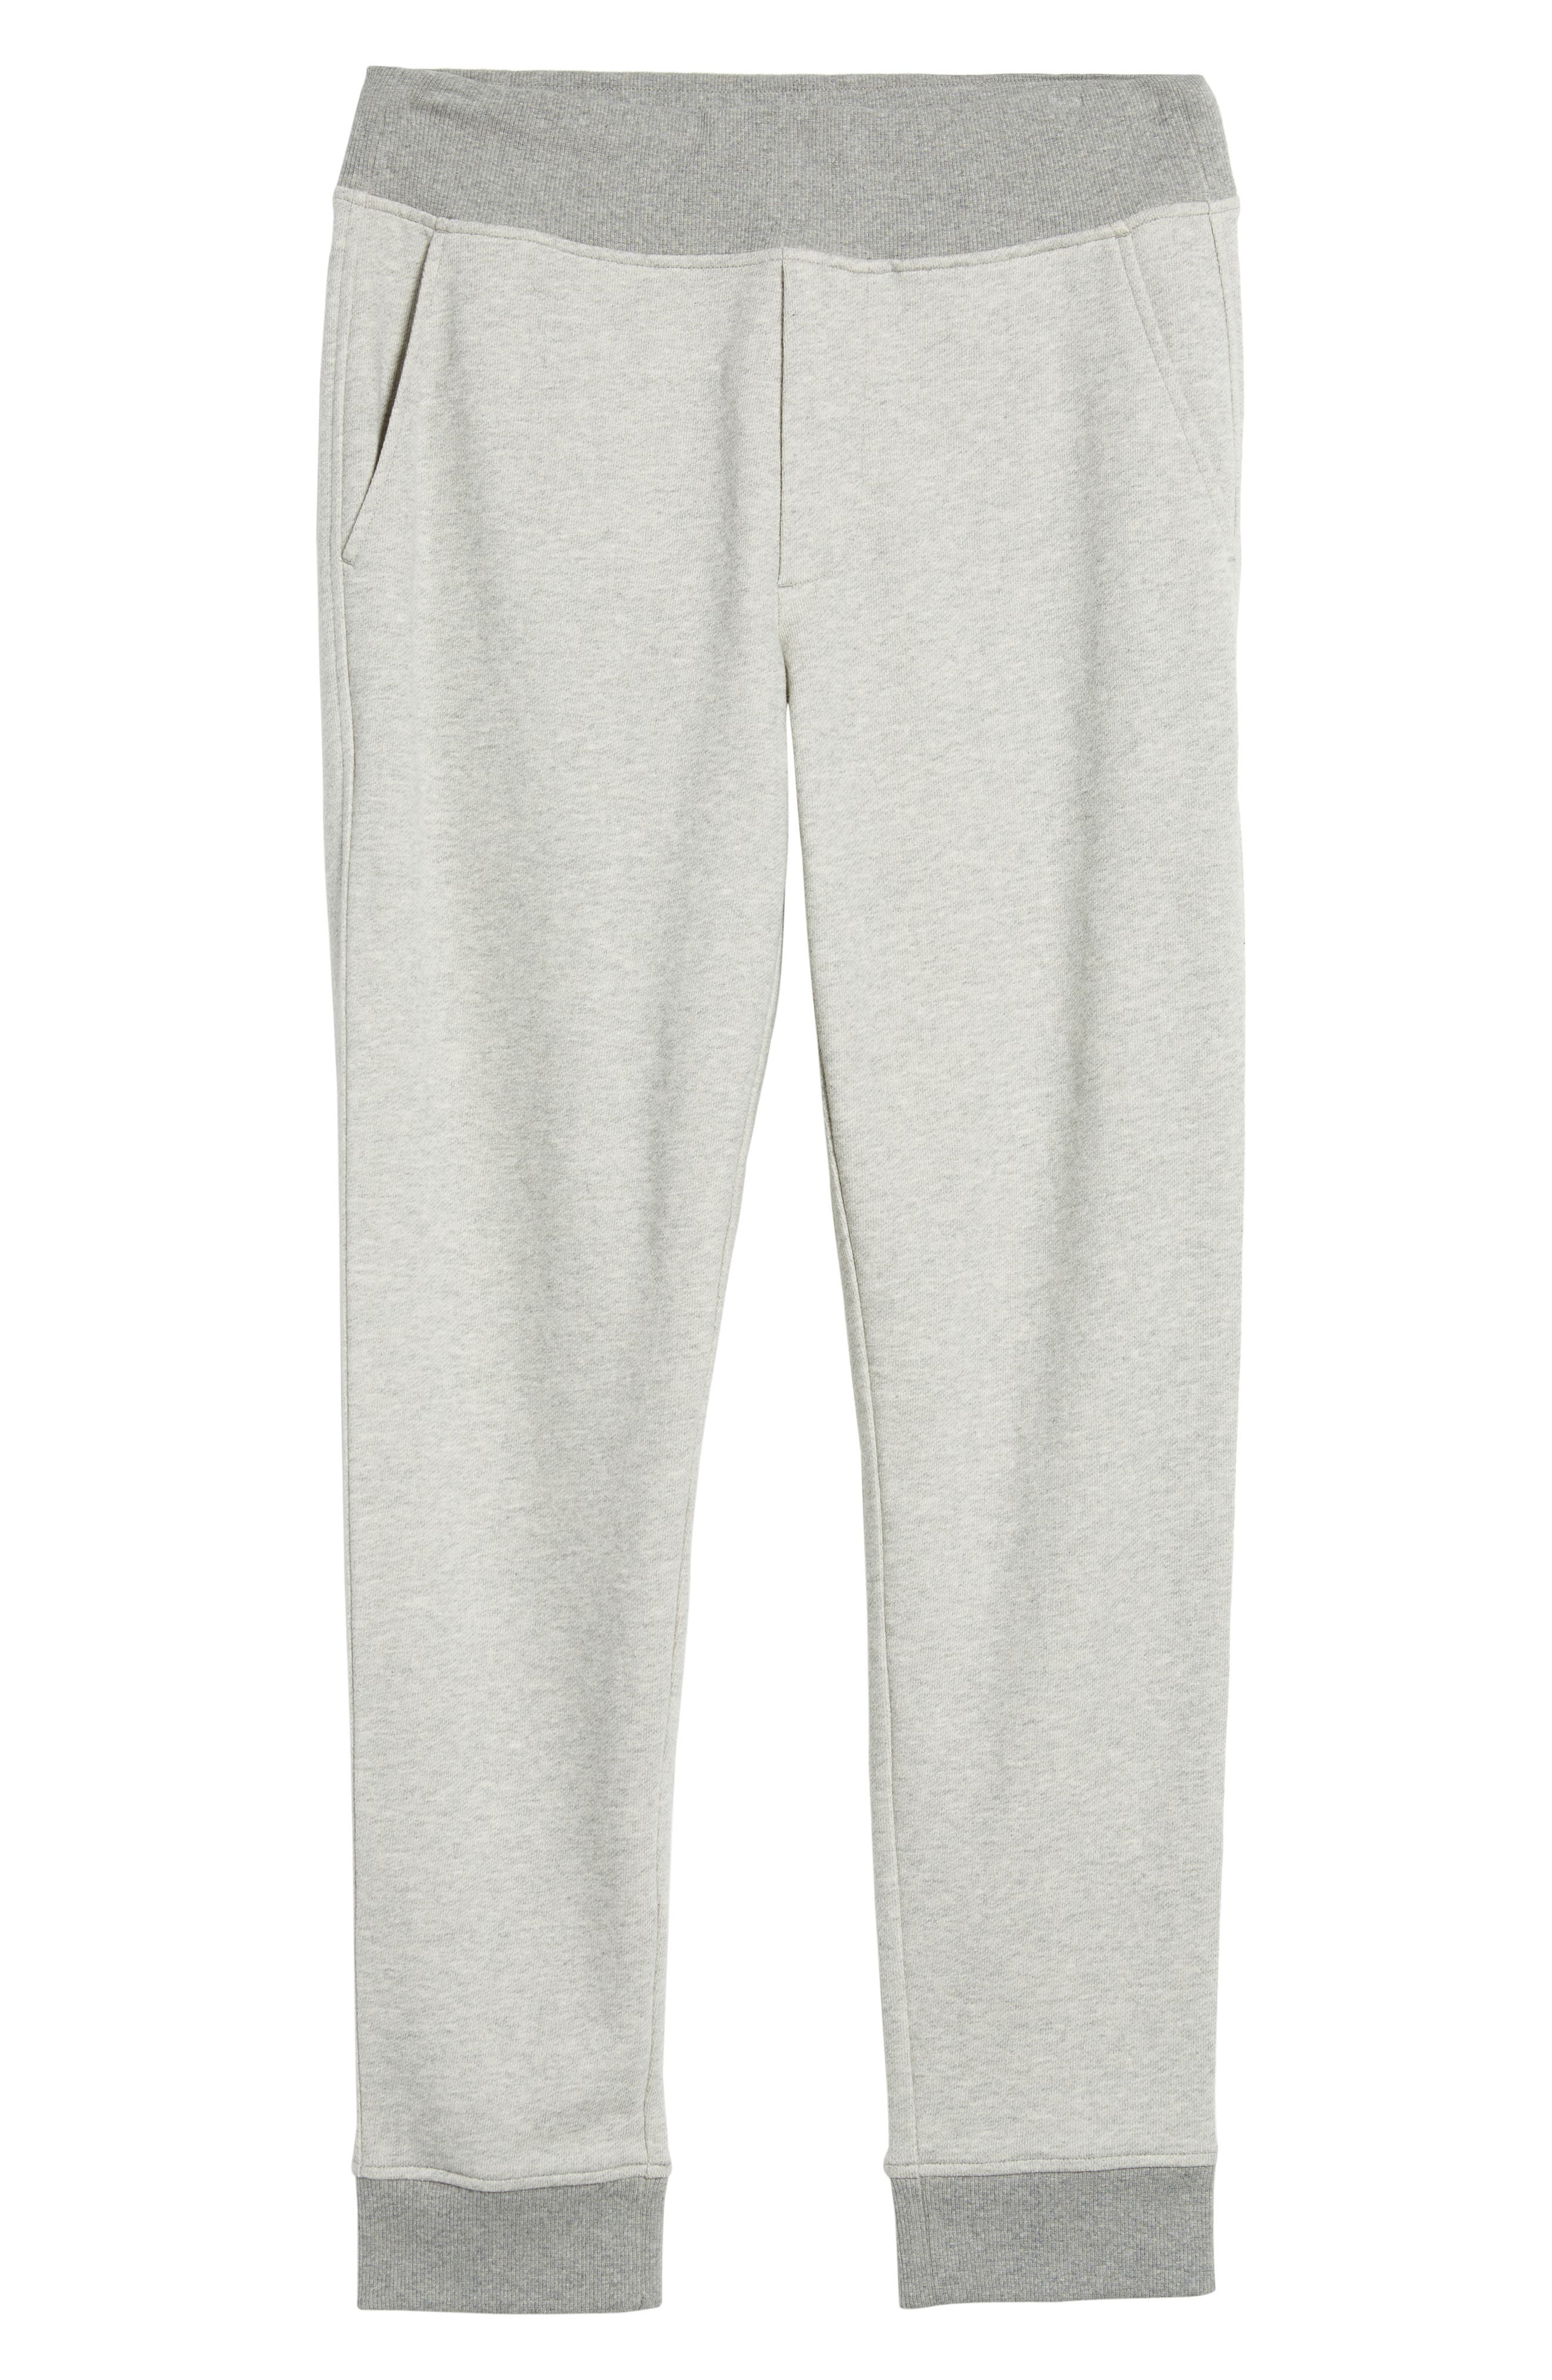 French Terry Regular Fit Sweatpants,                             Alternate thumbnail 12, color,